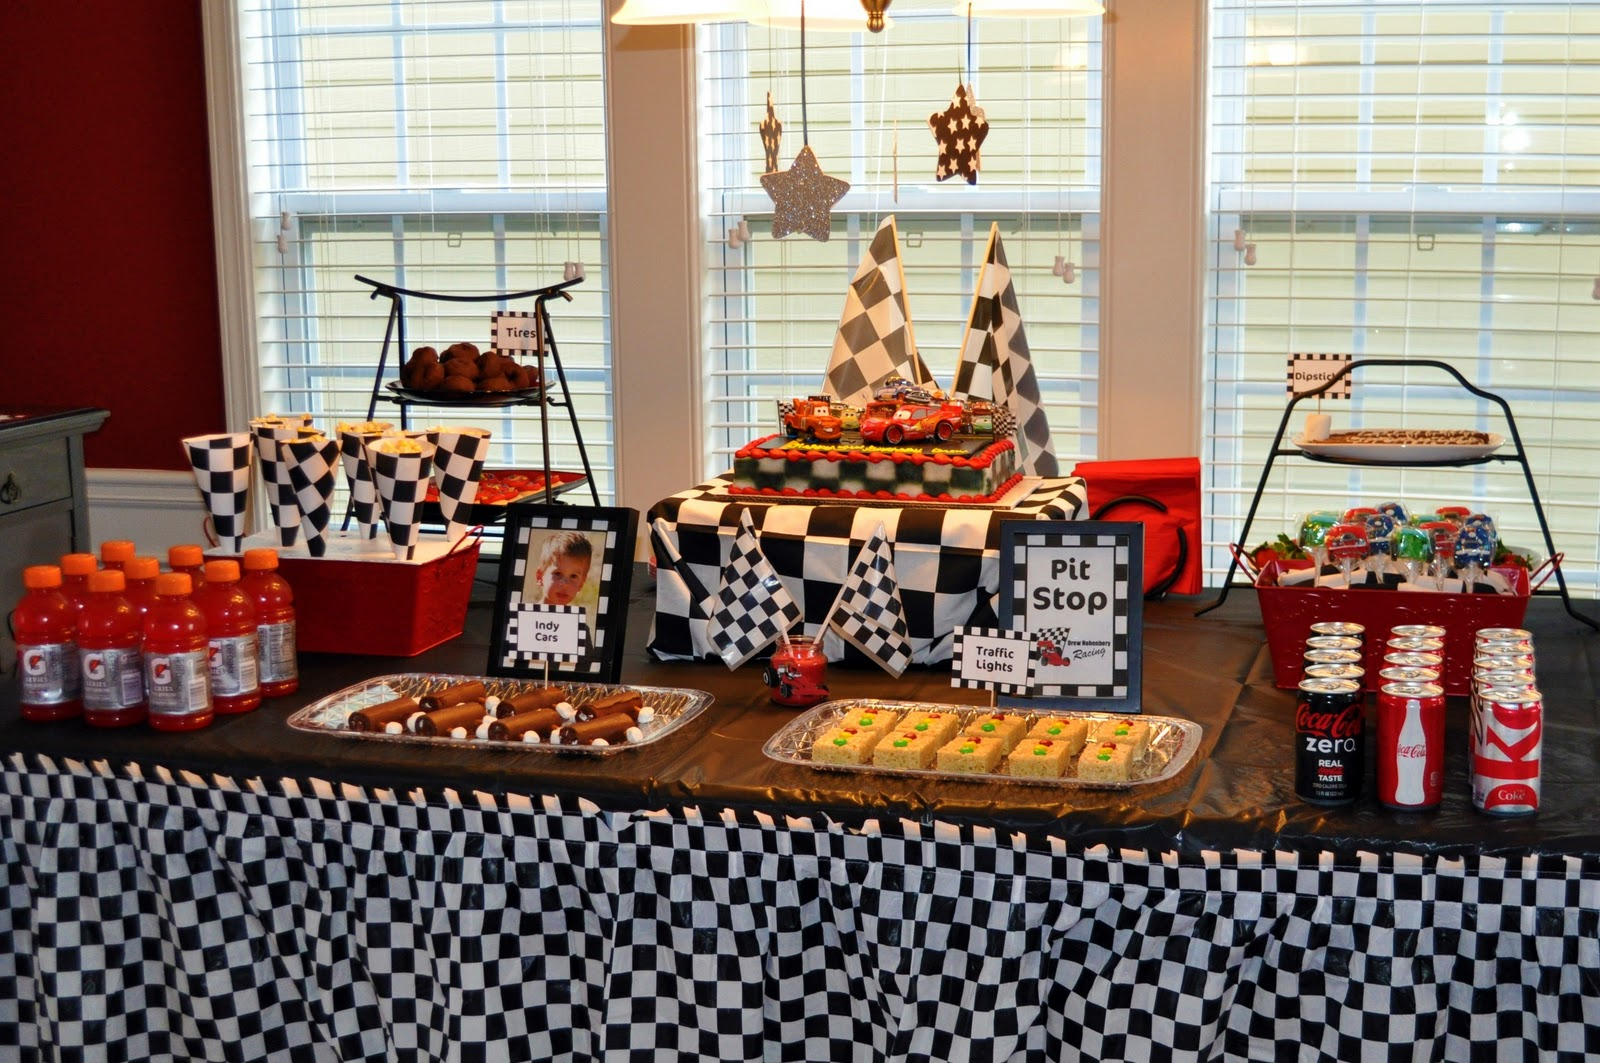 Race car birthday party - Th party theme ideas ...